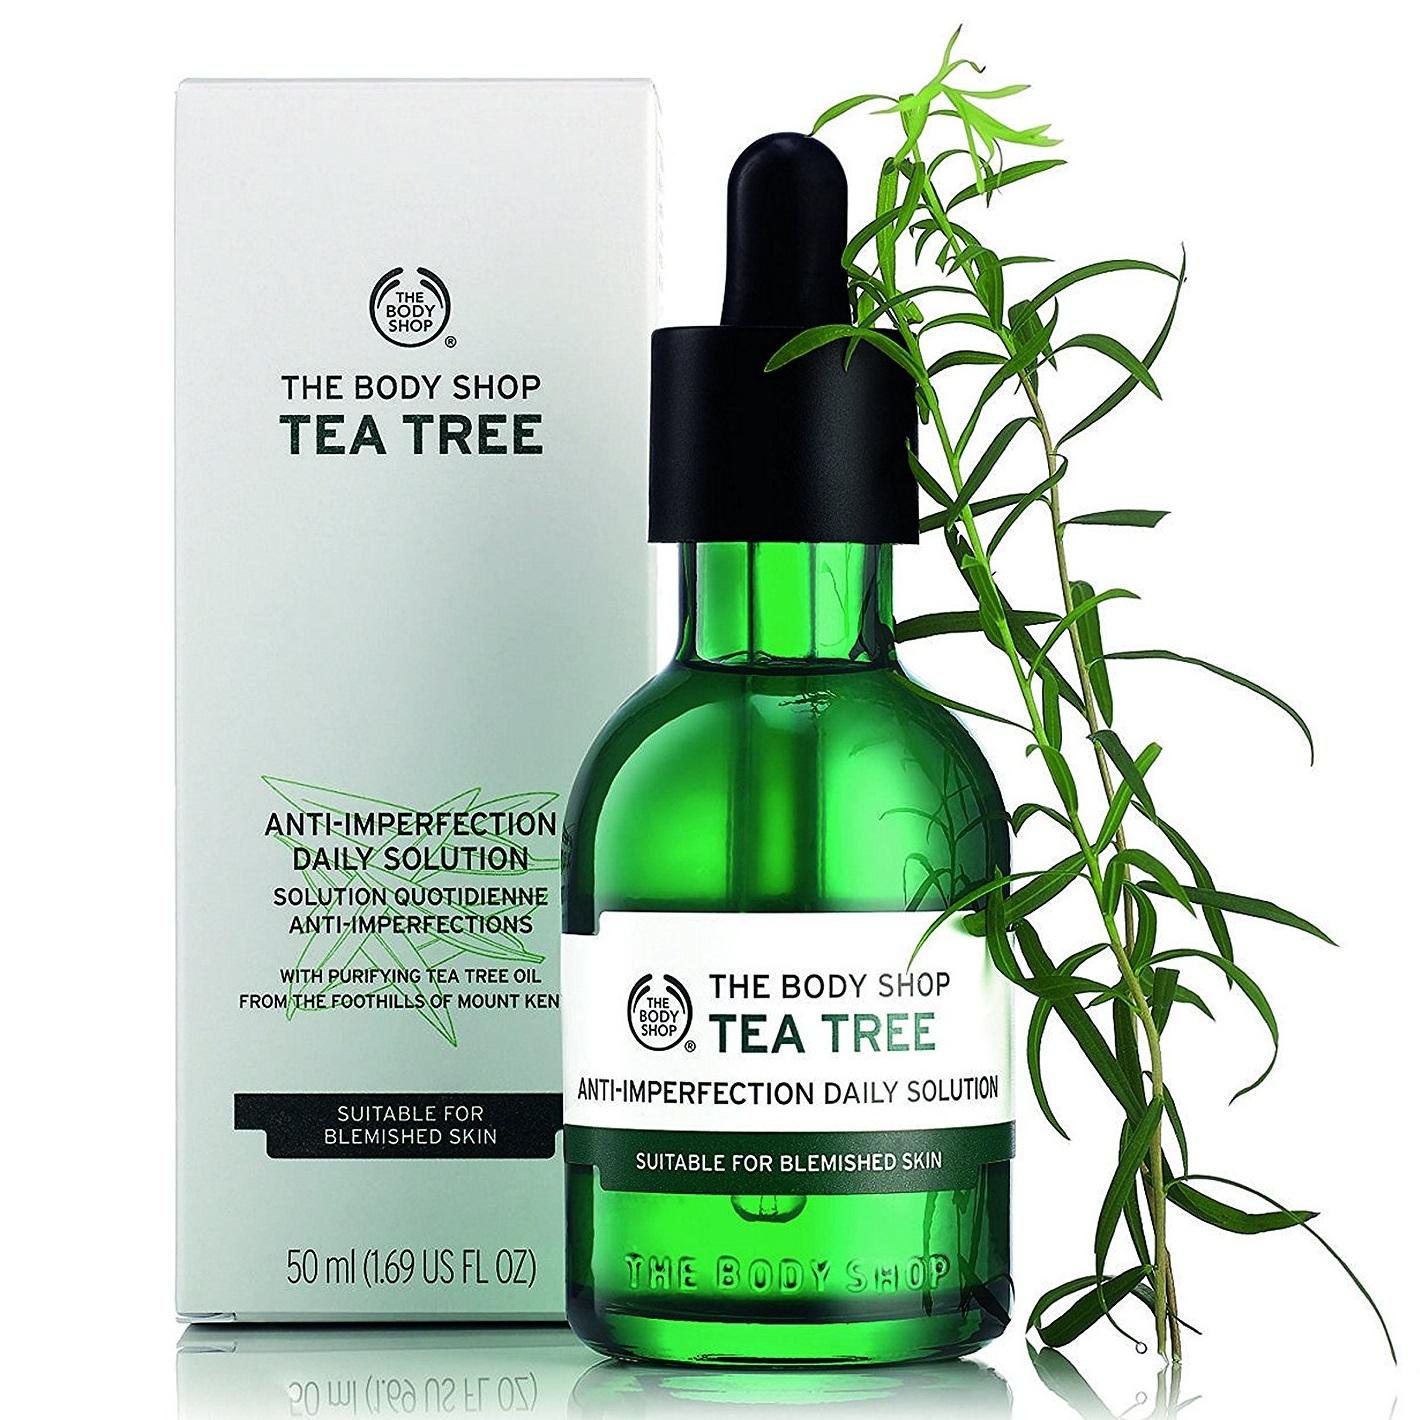 The Body Shoptaazakpower Buy At Best Shop Tea Tree Oil 10ml Anti Imperfection Daily Solution